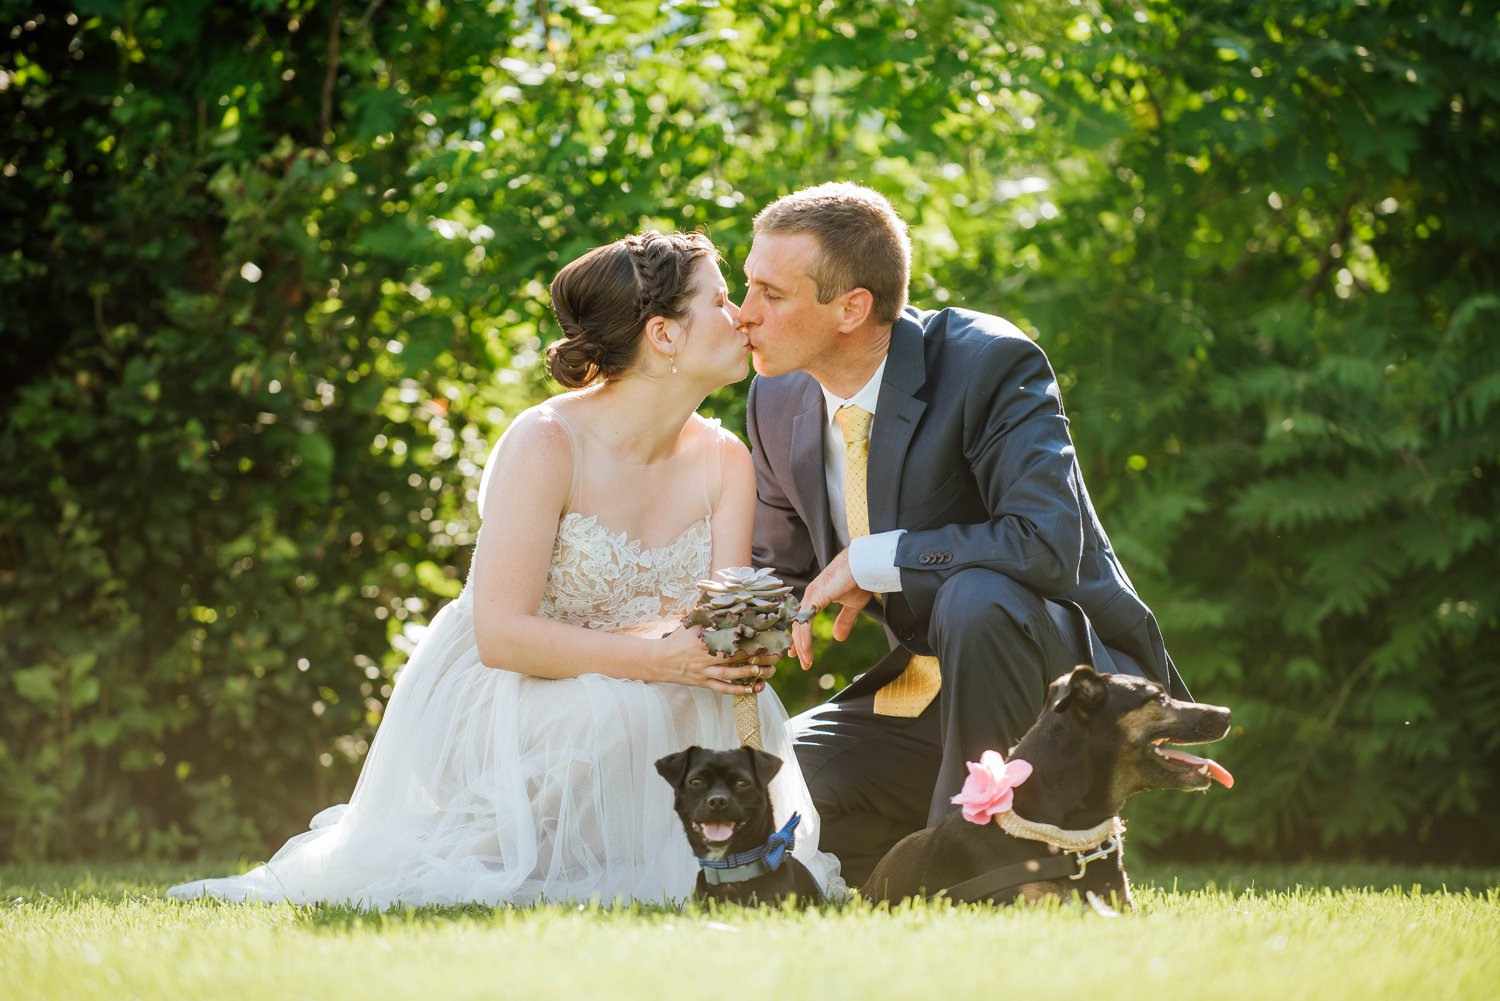 I love how the dogs have bow ties and flowers attached to their collars.Photo by Maddie Mae Photography